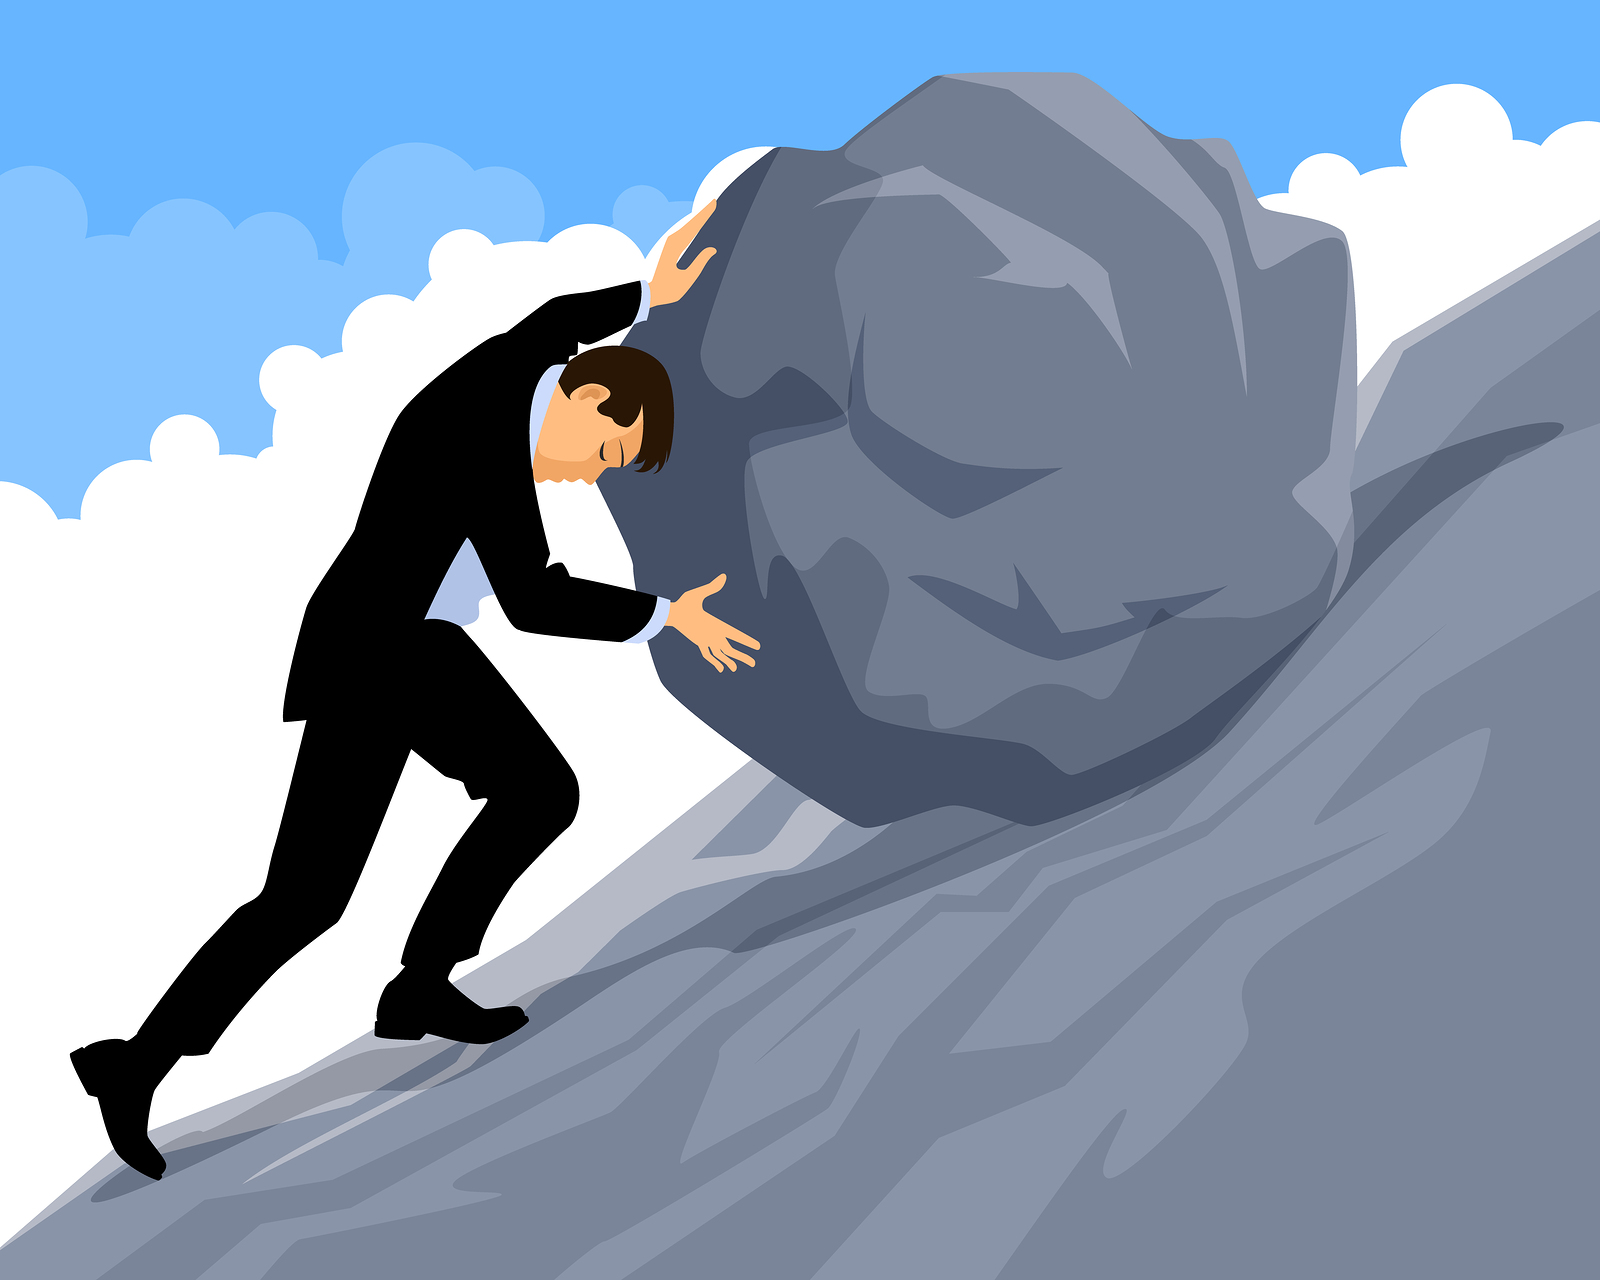 An employee struggling to push a boulder up a hill.